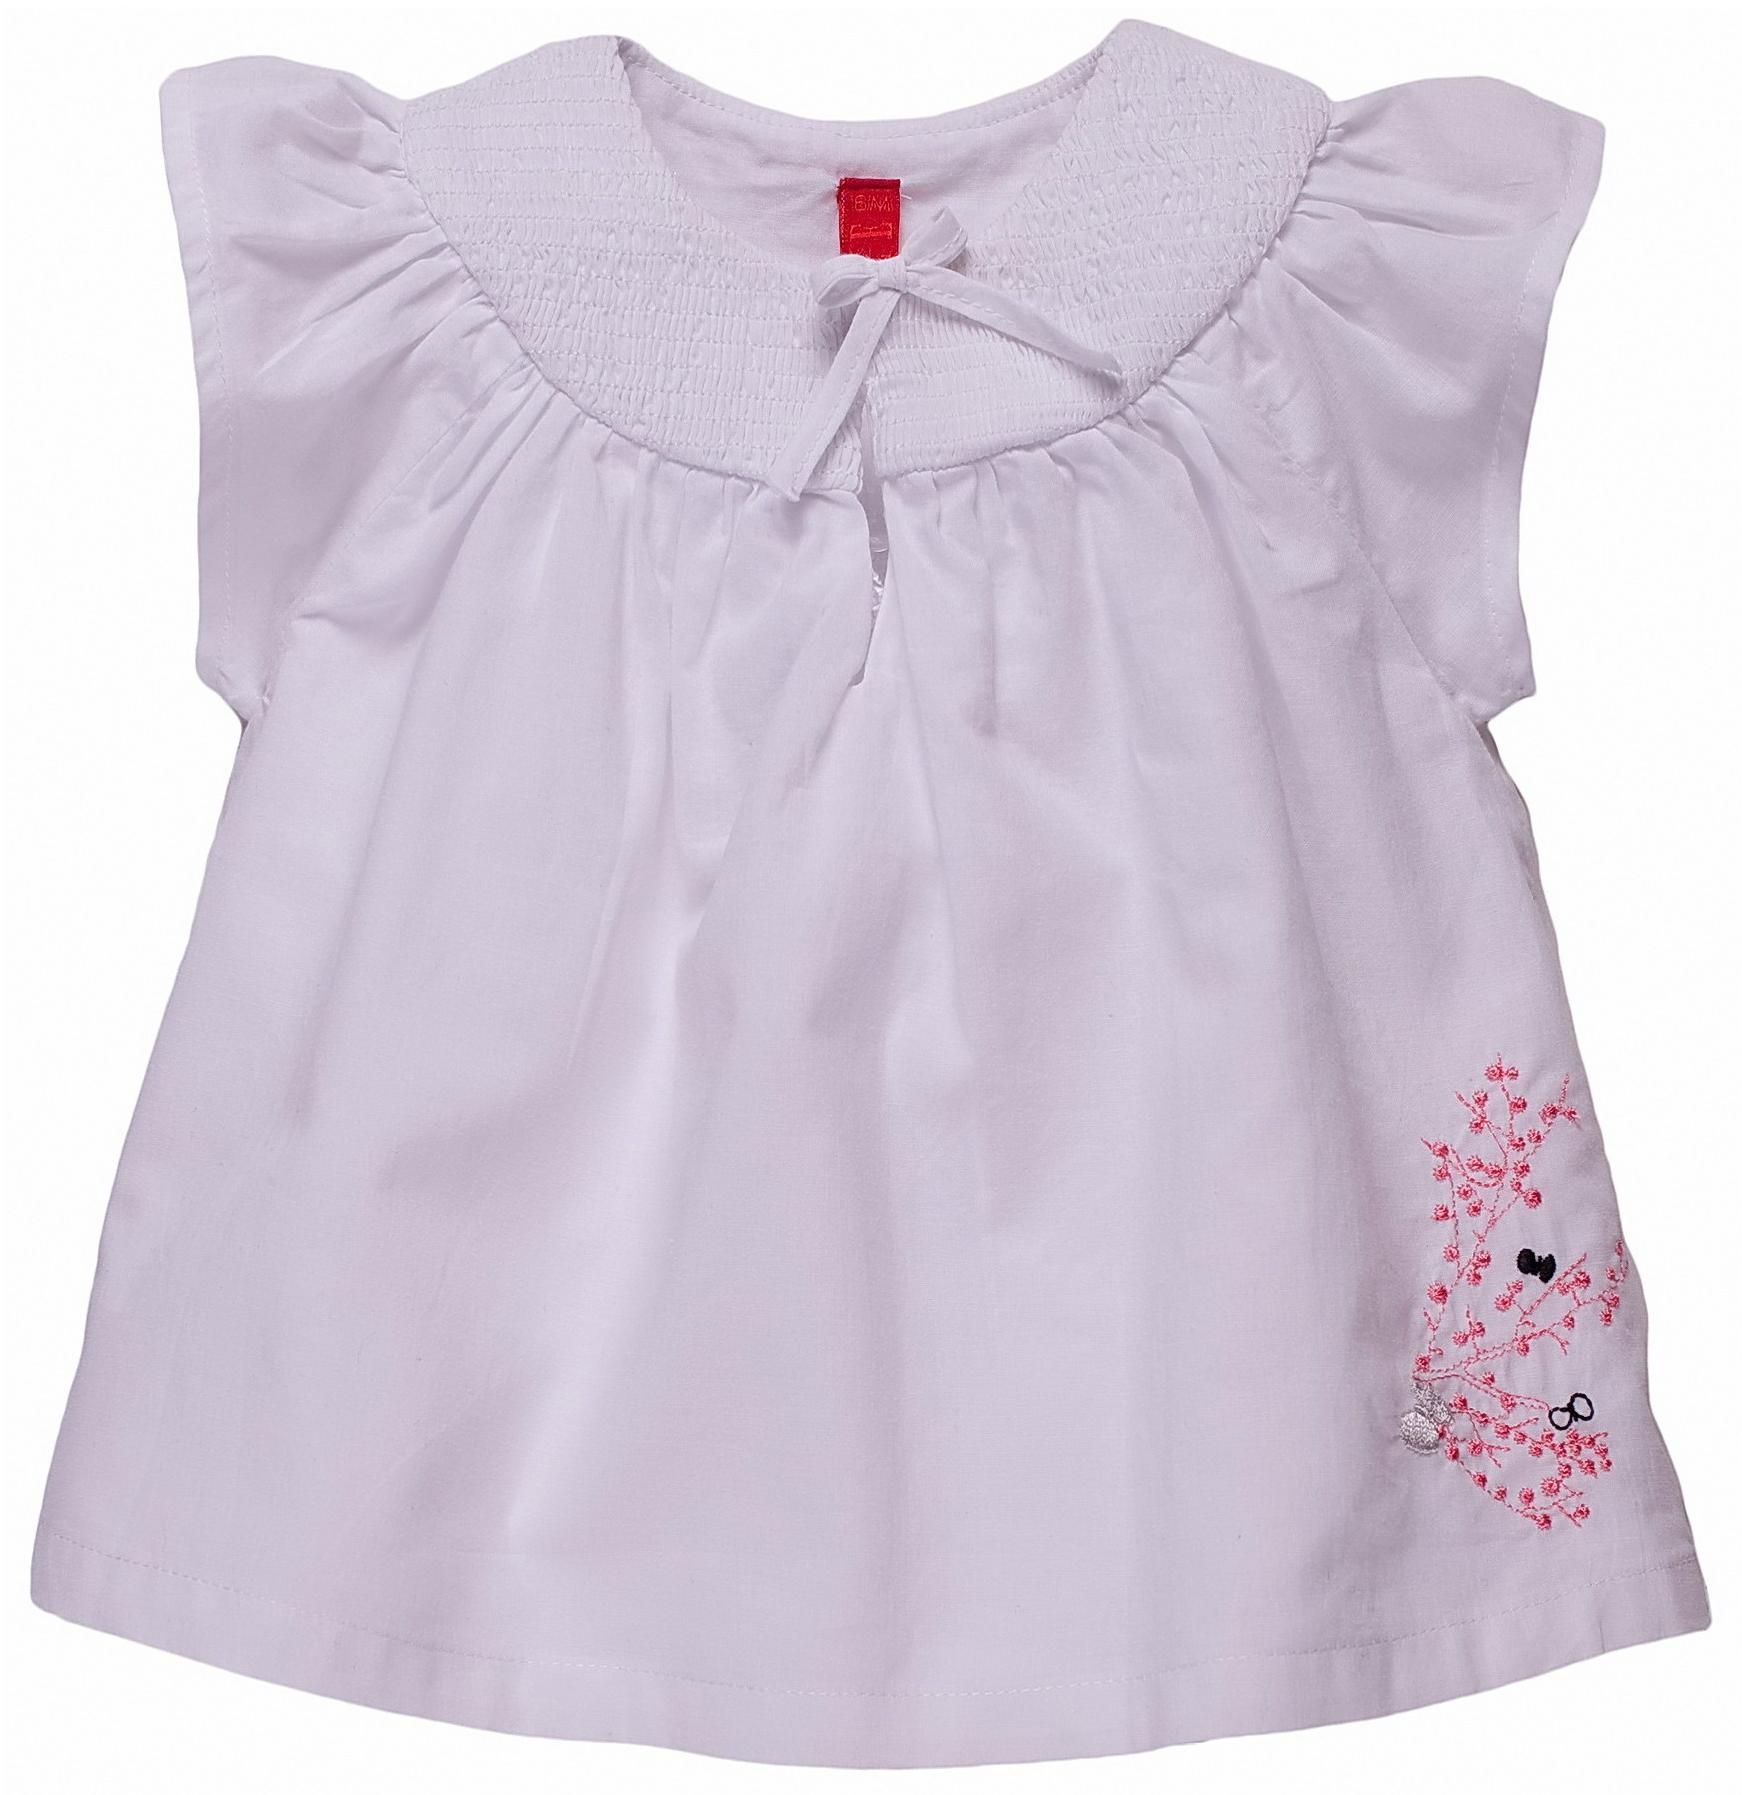 Elle Short-sleeved blouse - White `2 yrs,18 mths,9 product image